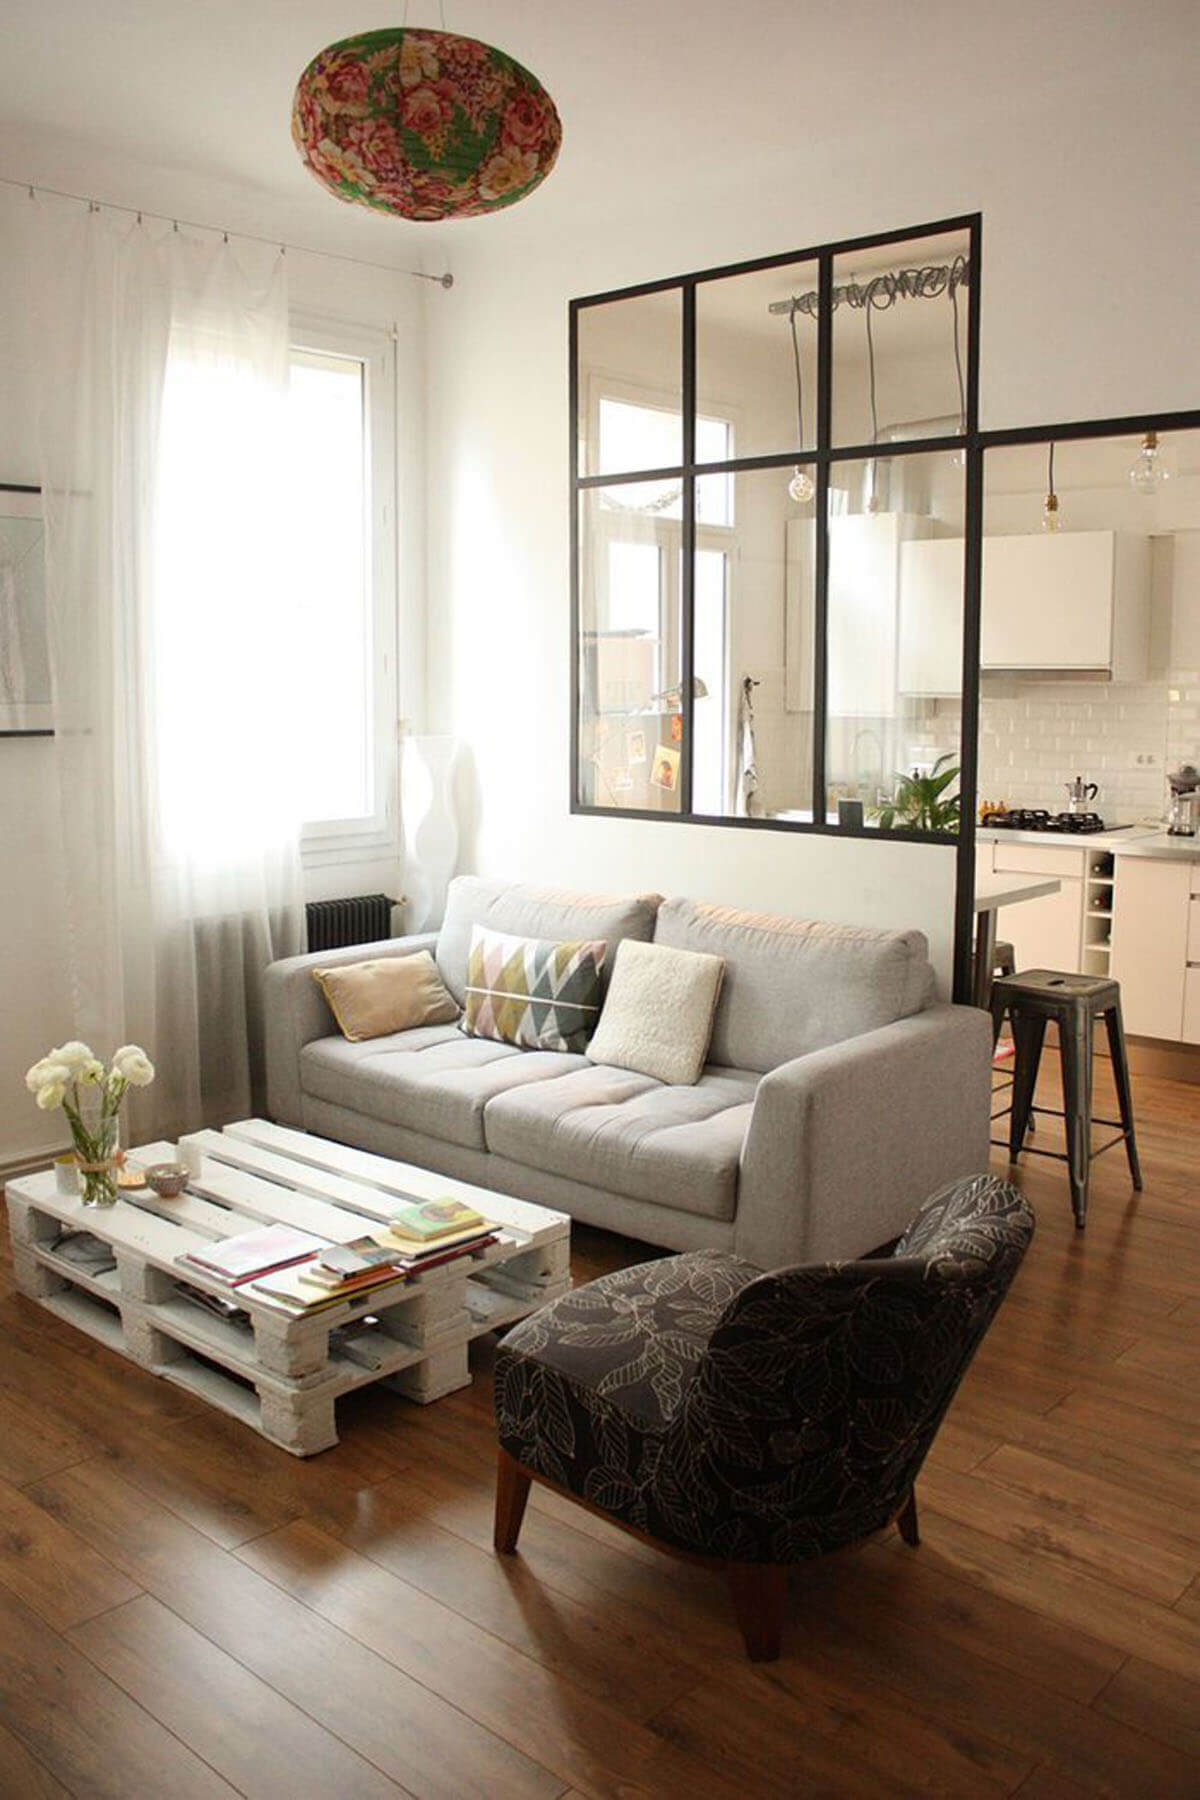 25+ Best Small Living Room Decor and Design Ideas for 2020 on Small Living Room Decorating Ideas  id=17197